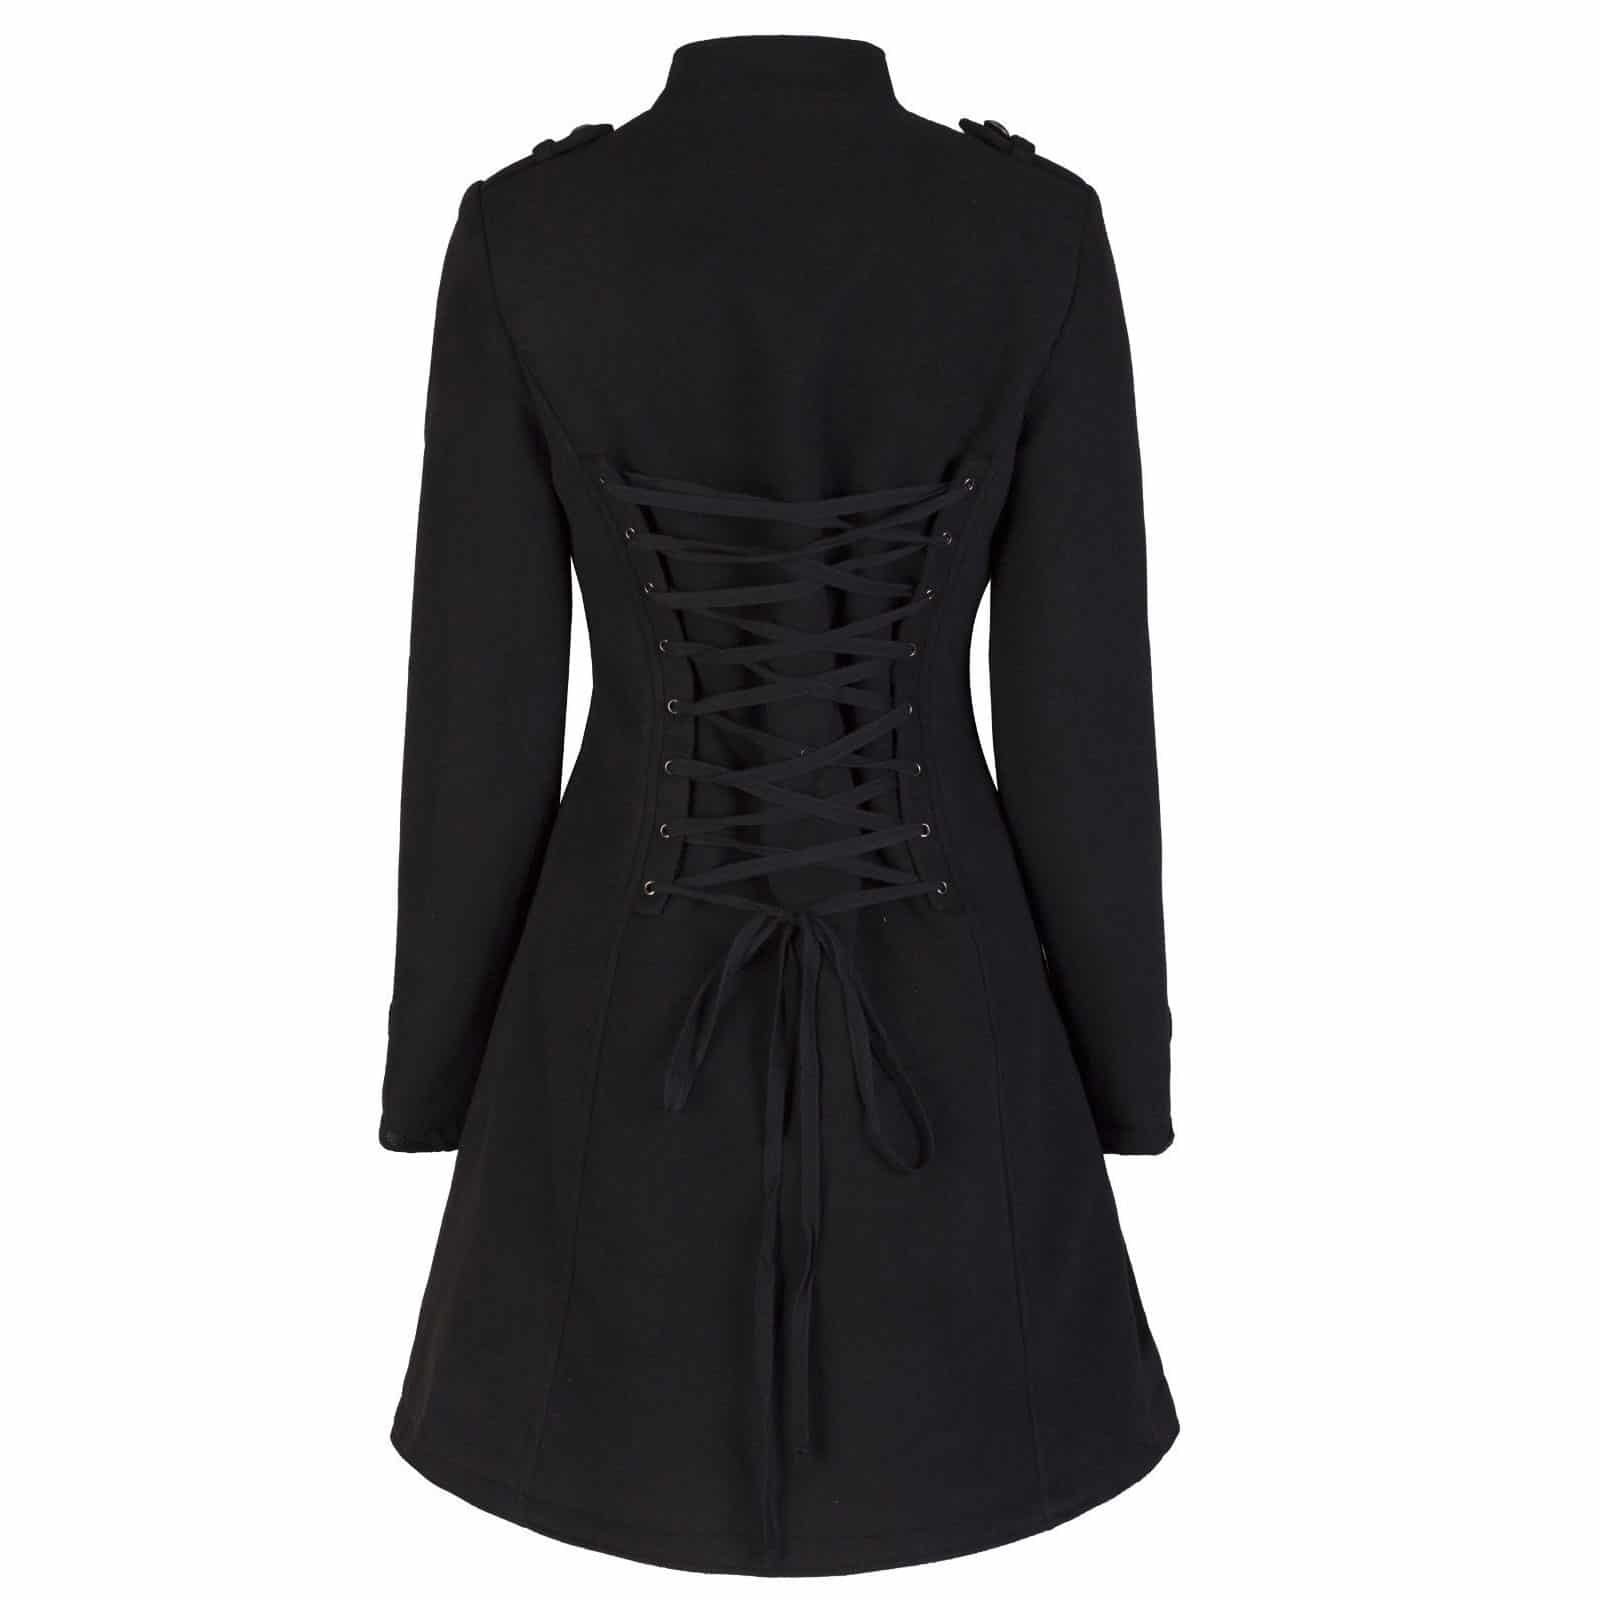 Ladies New Black Military Gothic Style Braided Wool Effect Coat Jacket